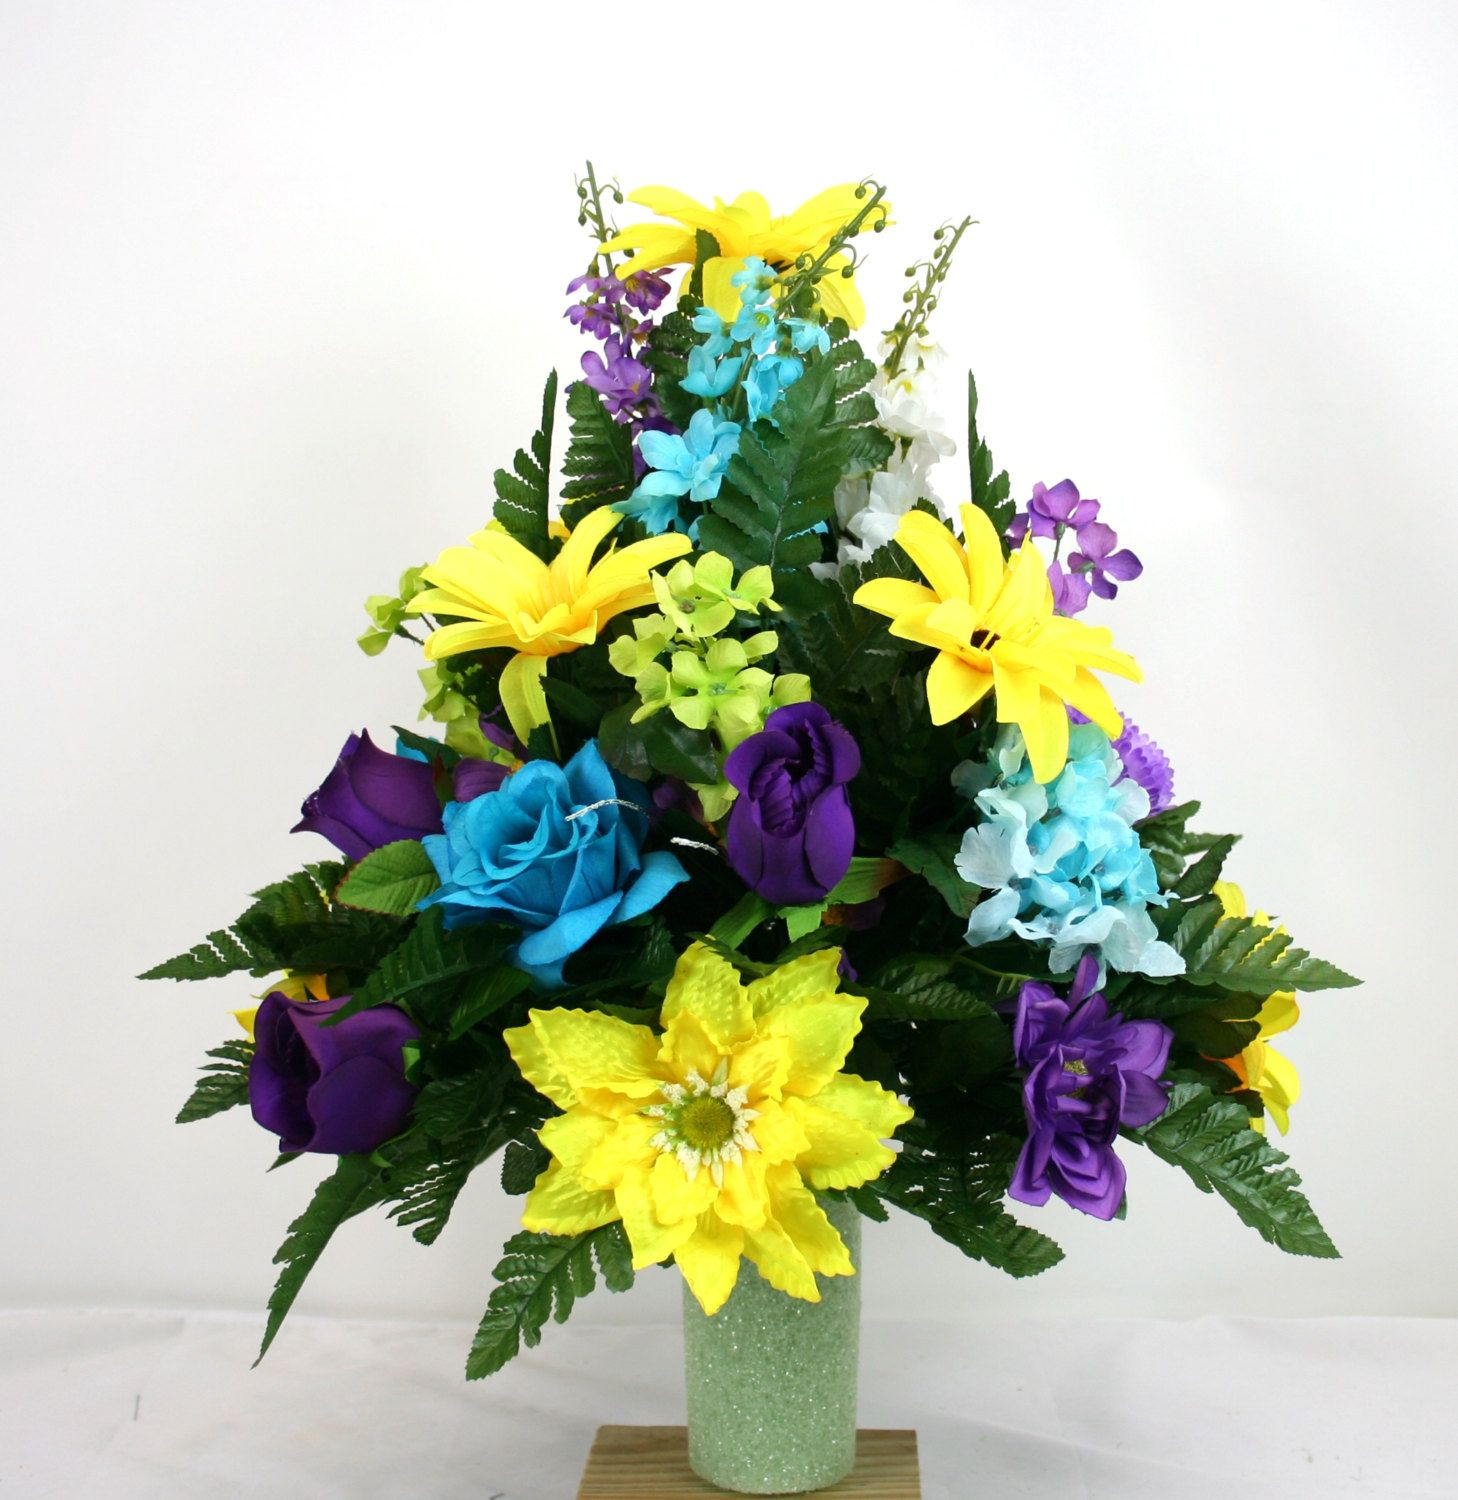 vase memorial decorations vases r flower of products s cemetery